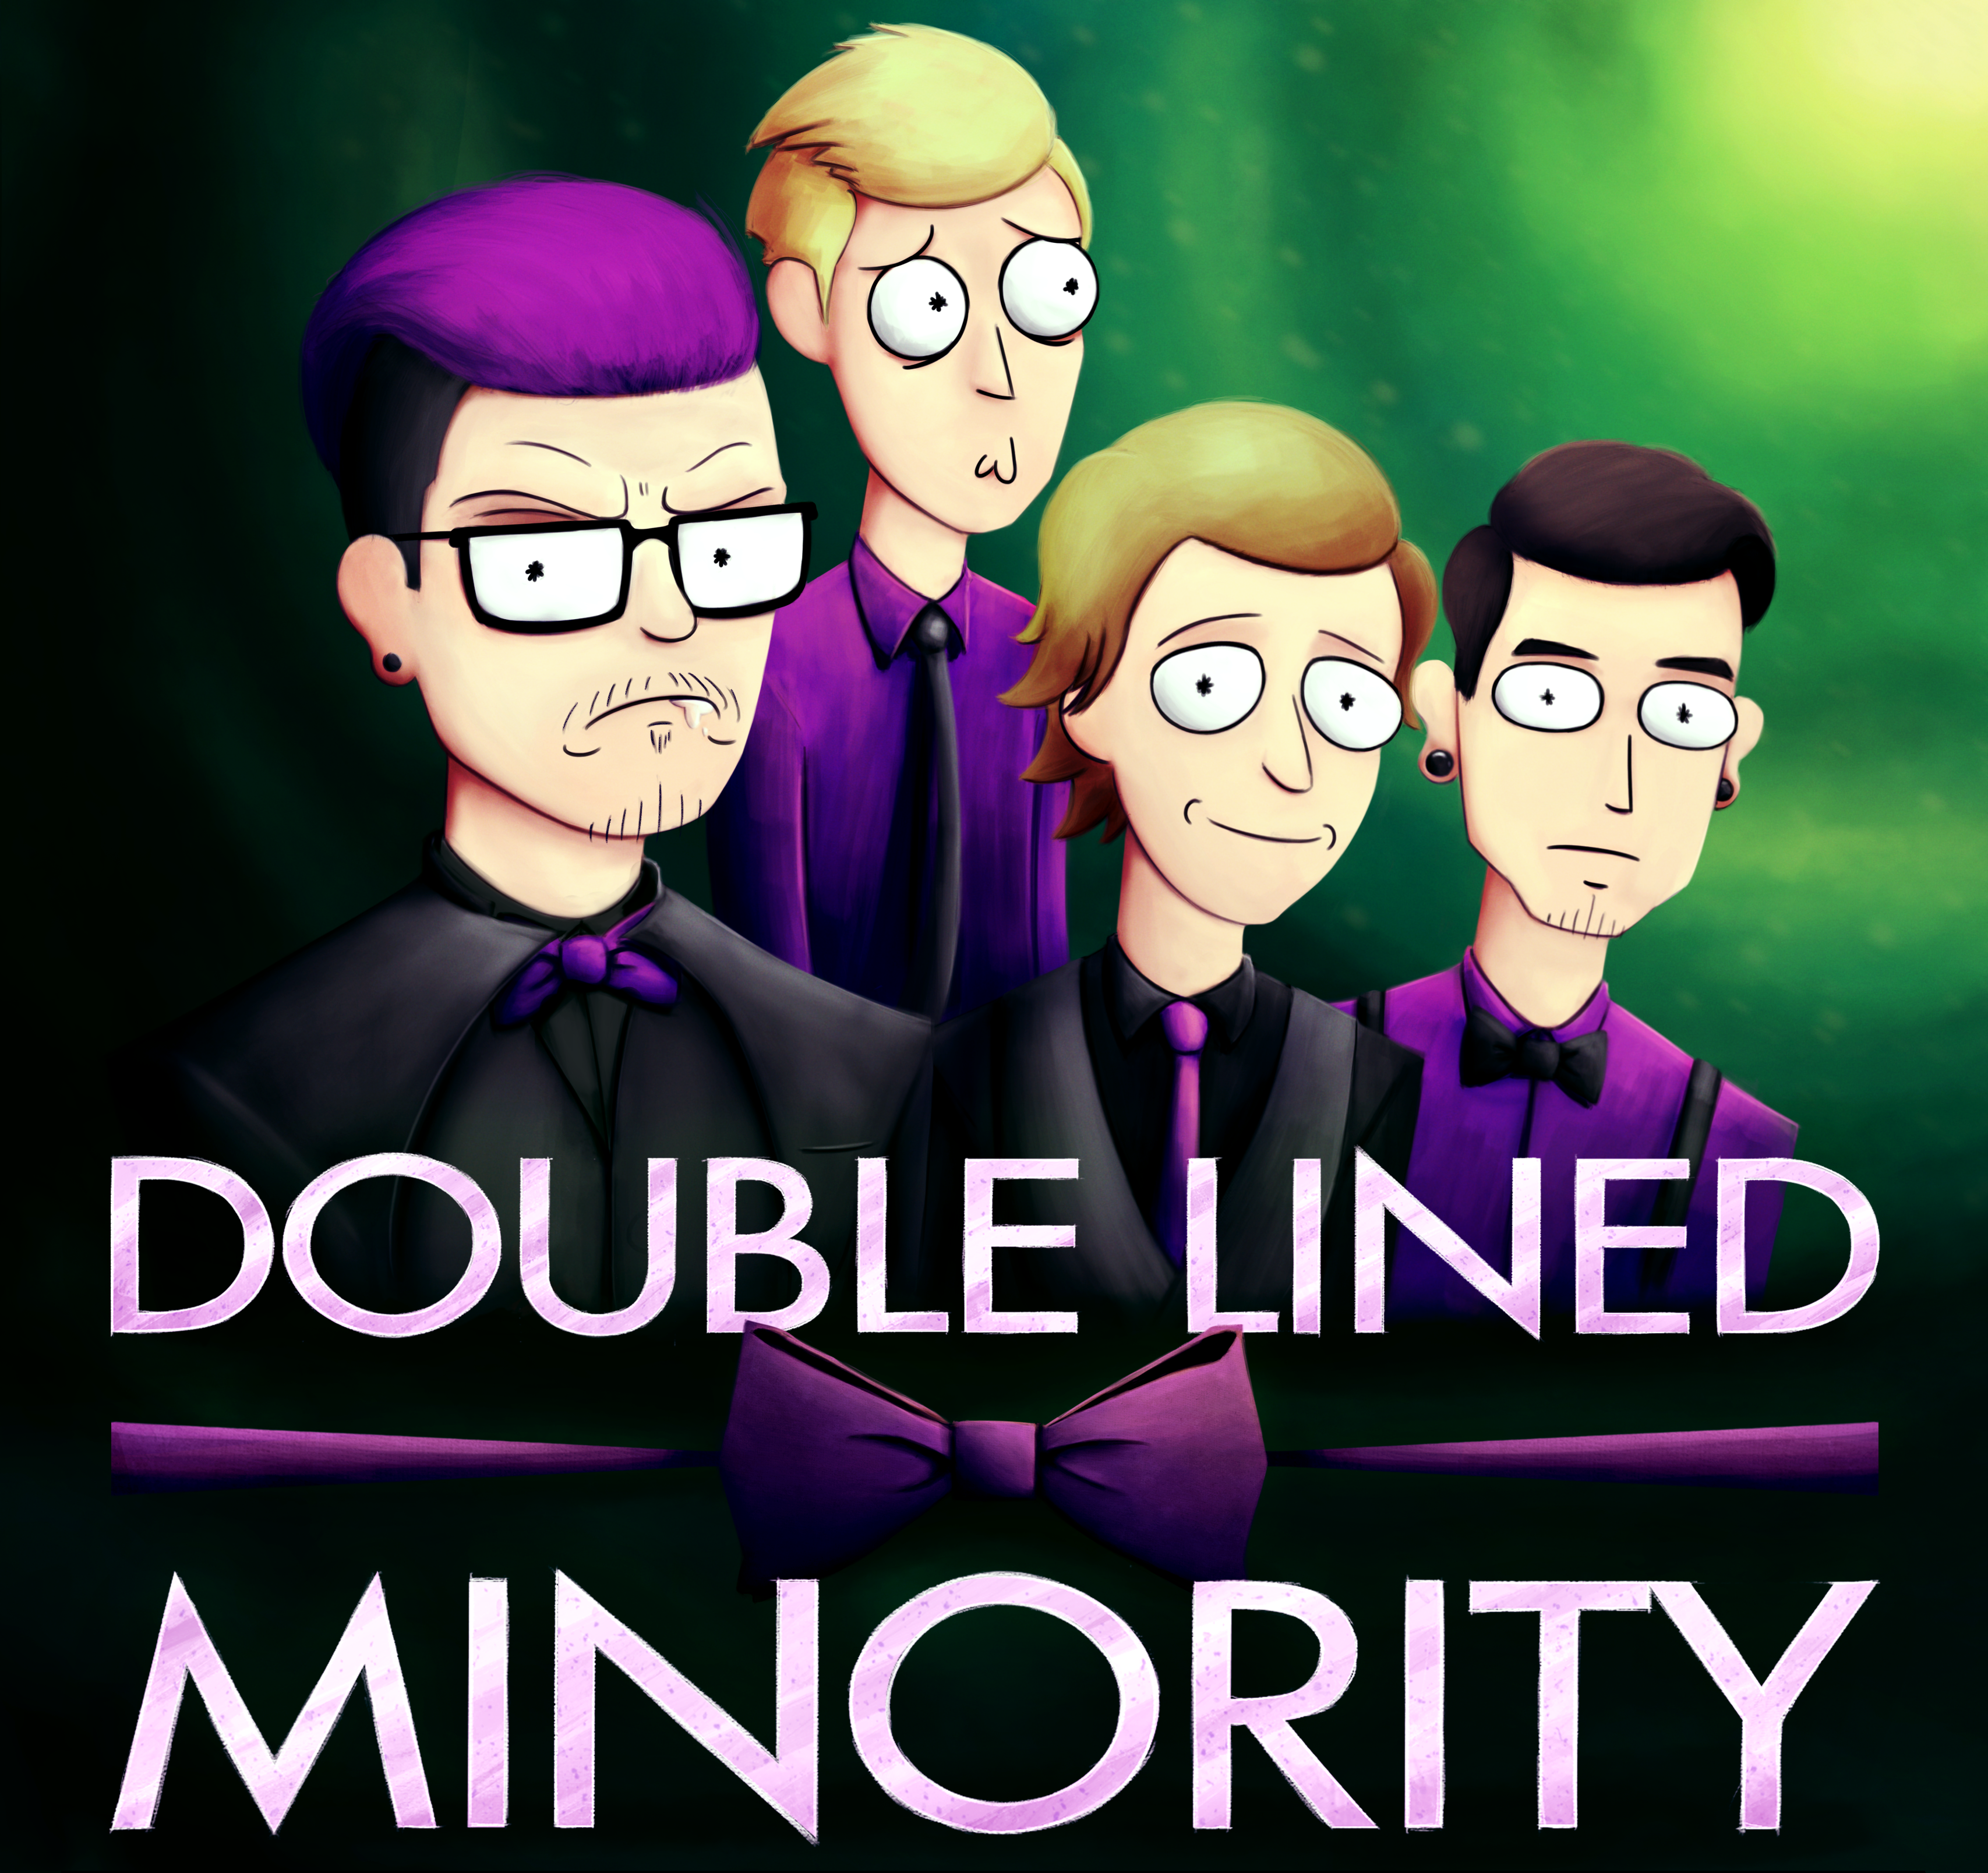 RICK and MORTY x DOUBLE LINED MINORITY